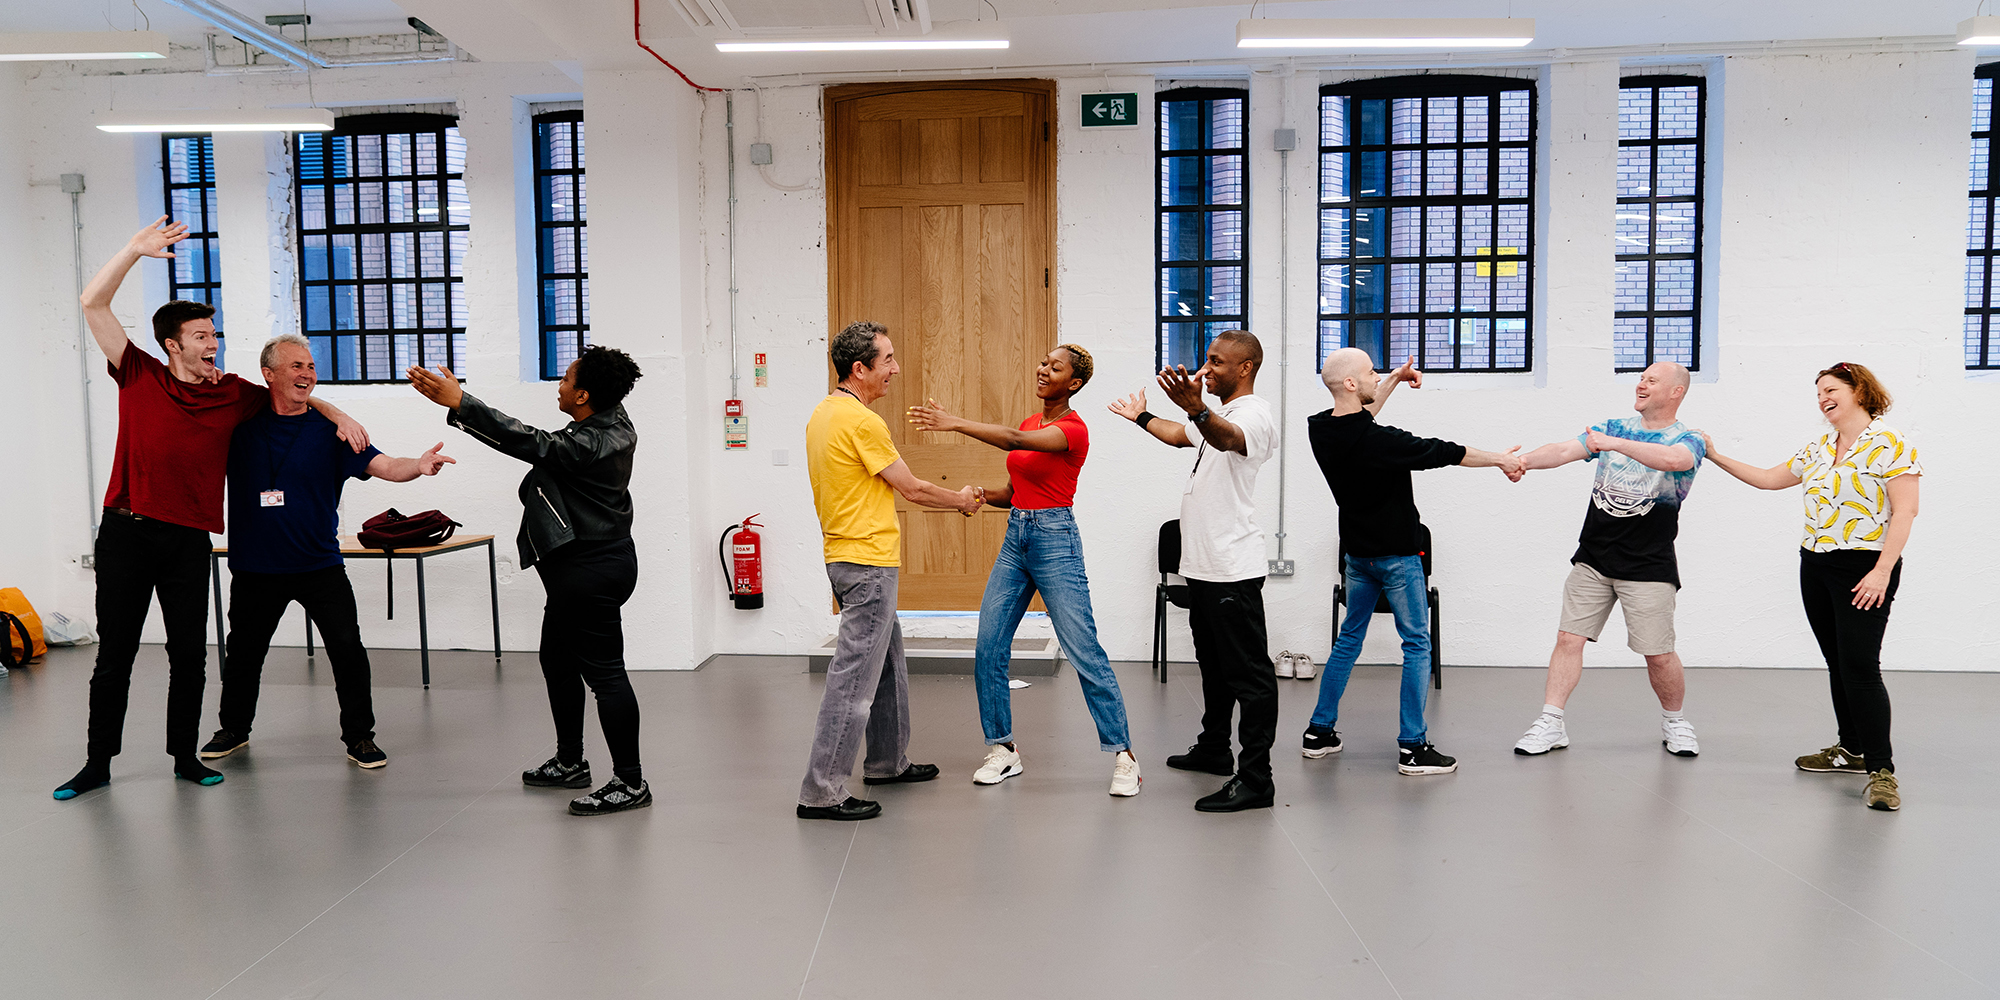 A chain of people stand in a row in a rehearsal room, arms outstretched and smiling at each other.